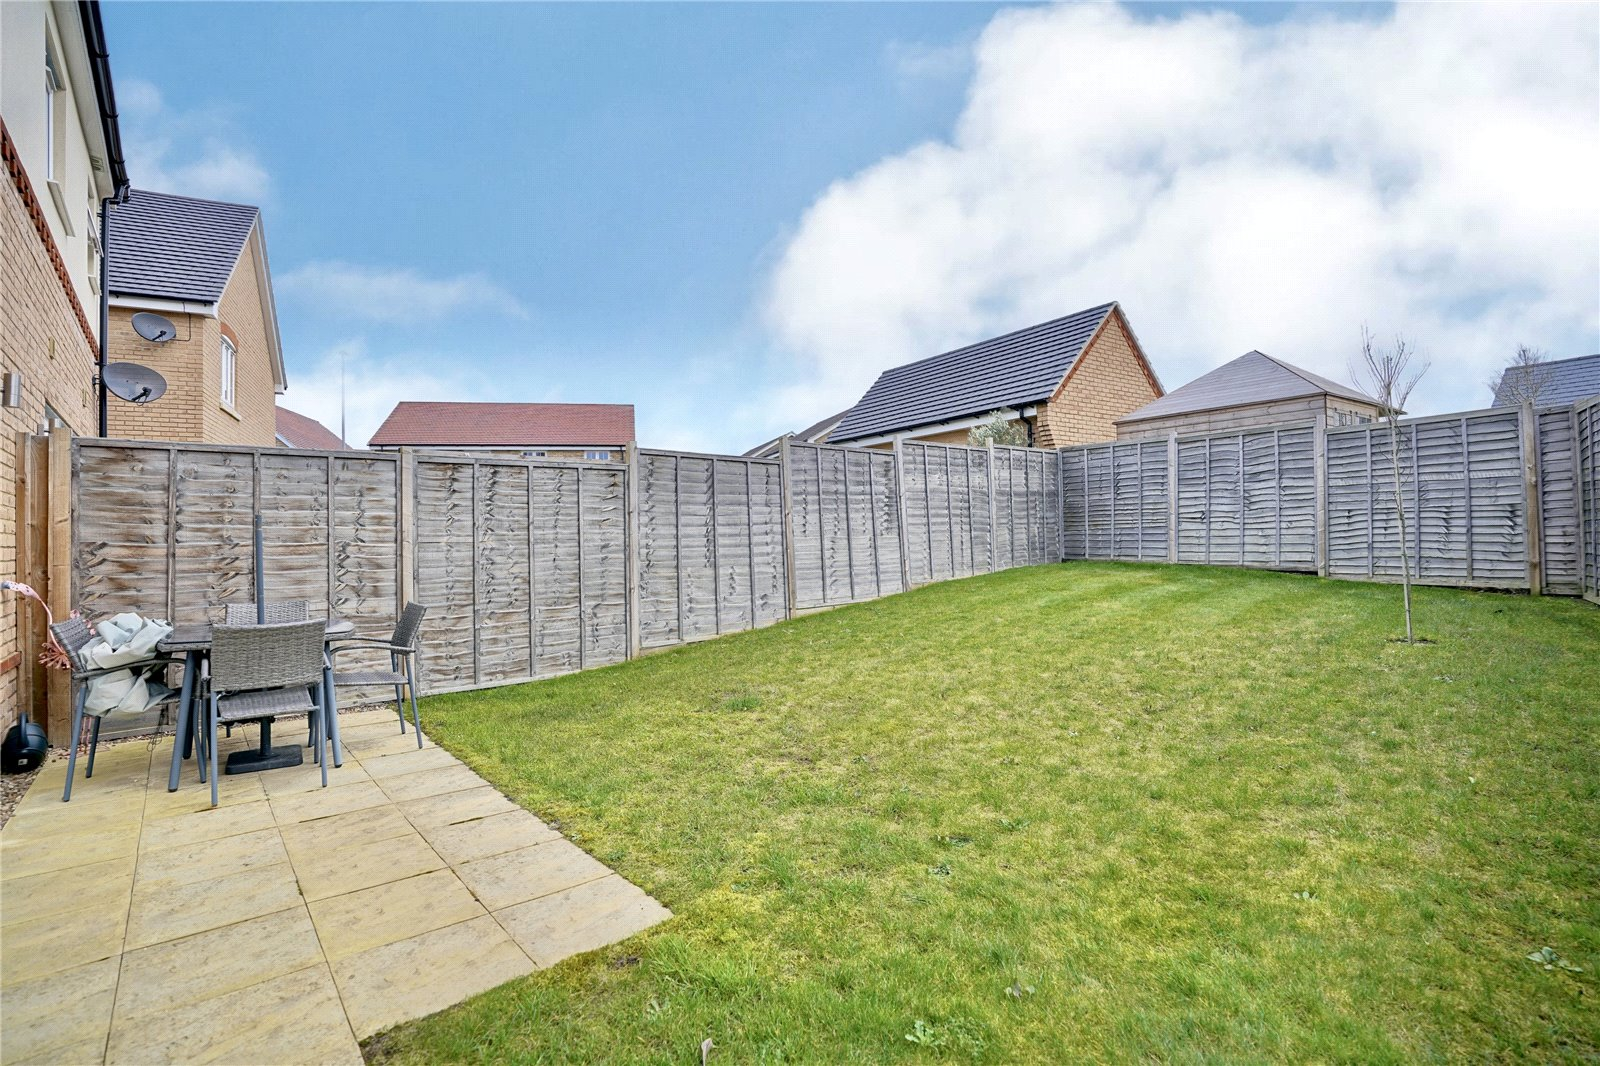 3 bed house for sale in Sawtry, PE28 5ZJ  - Property Image 4